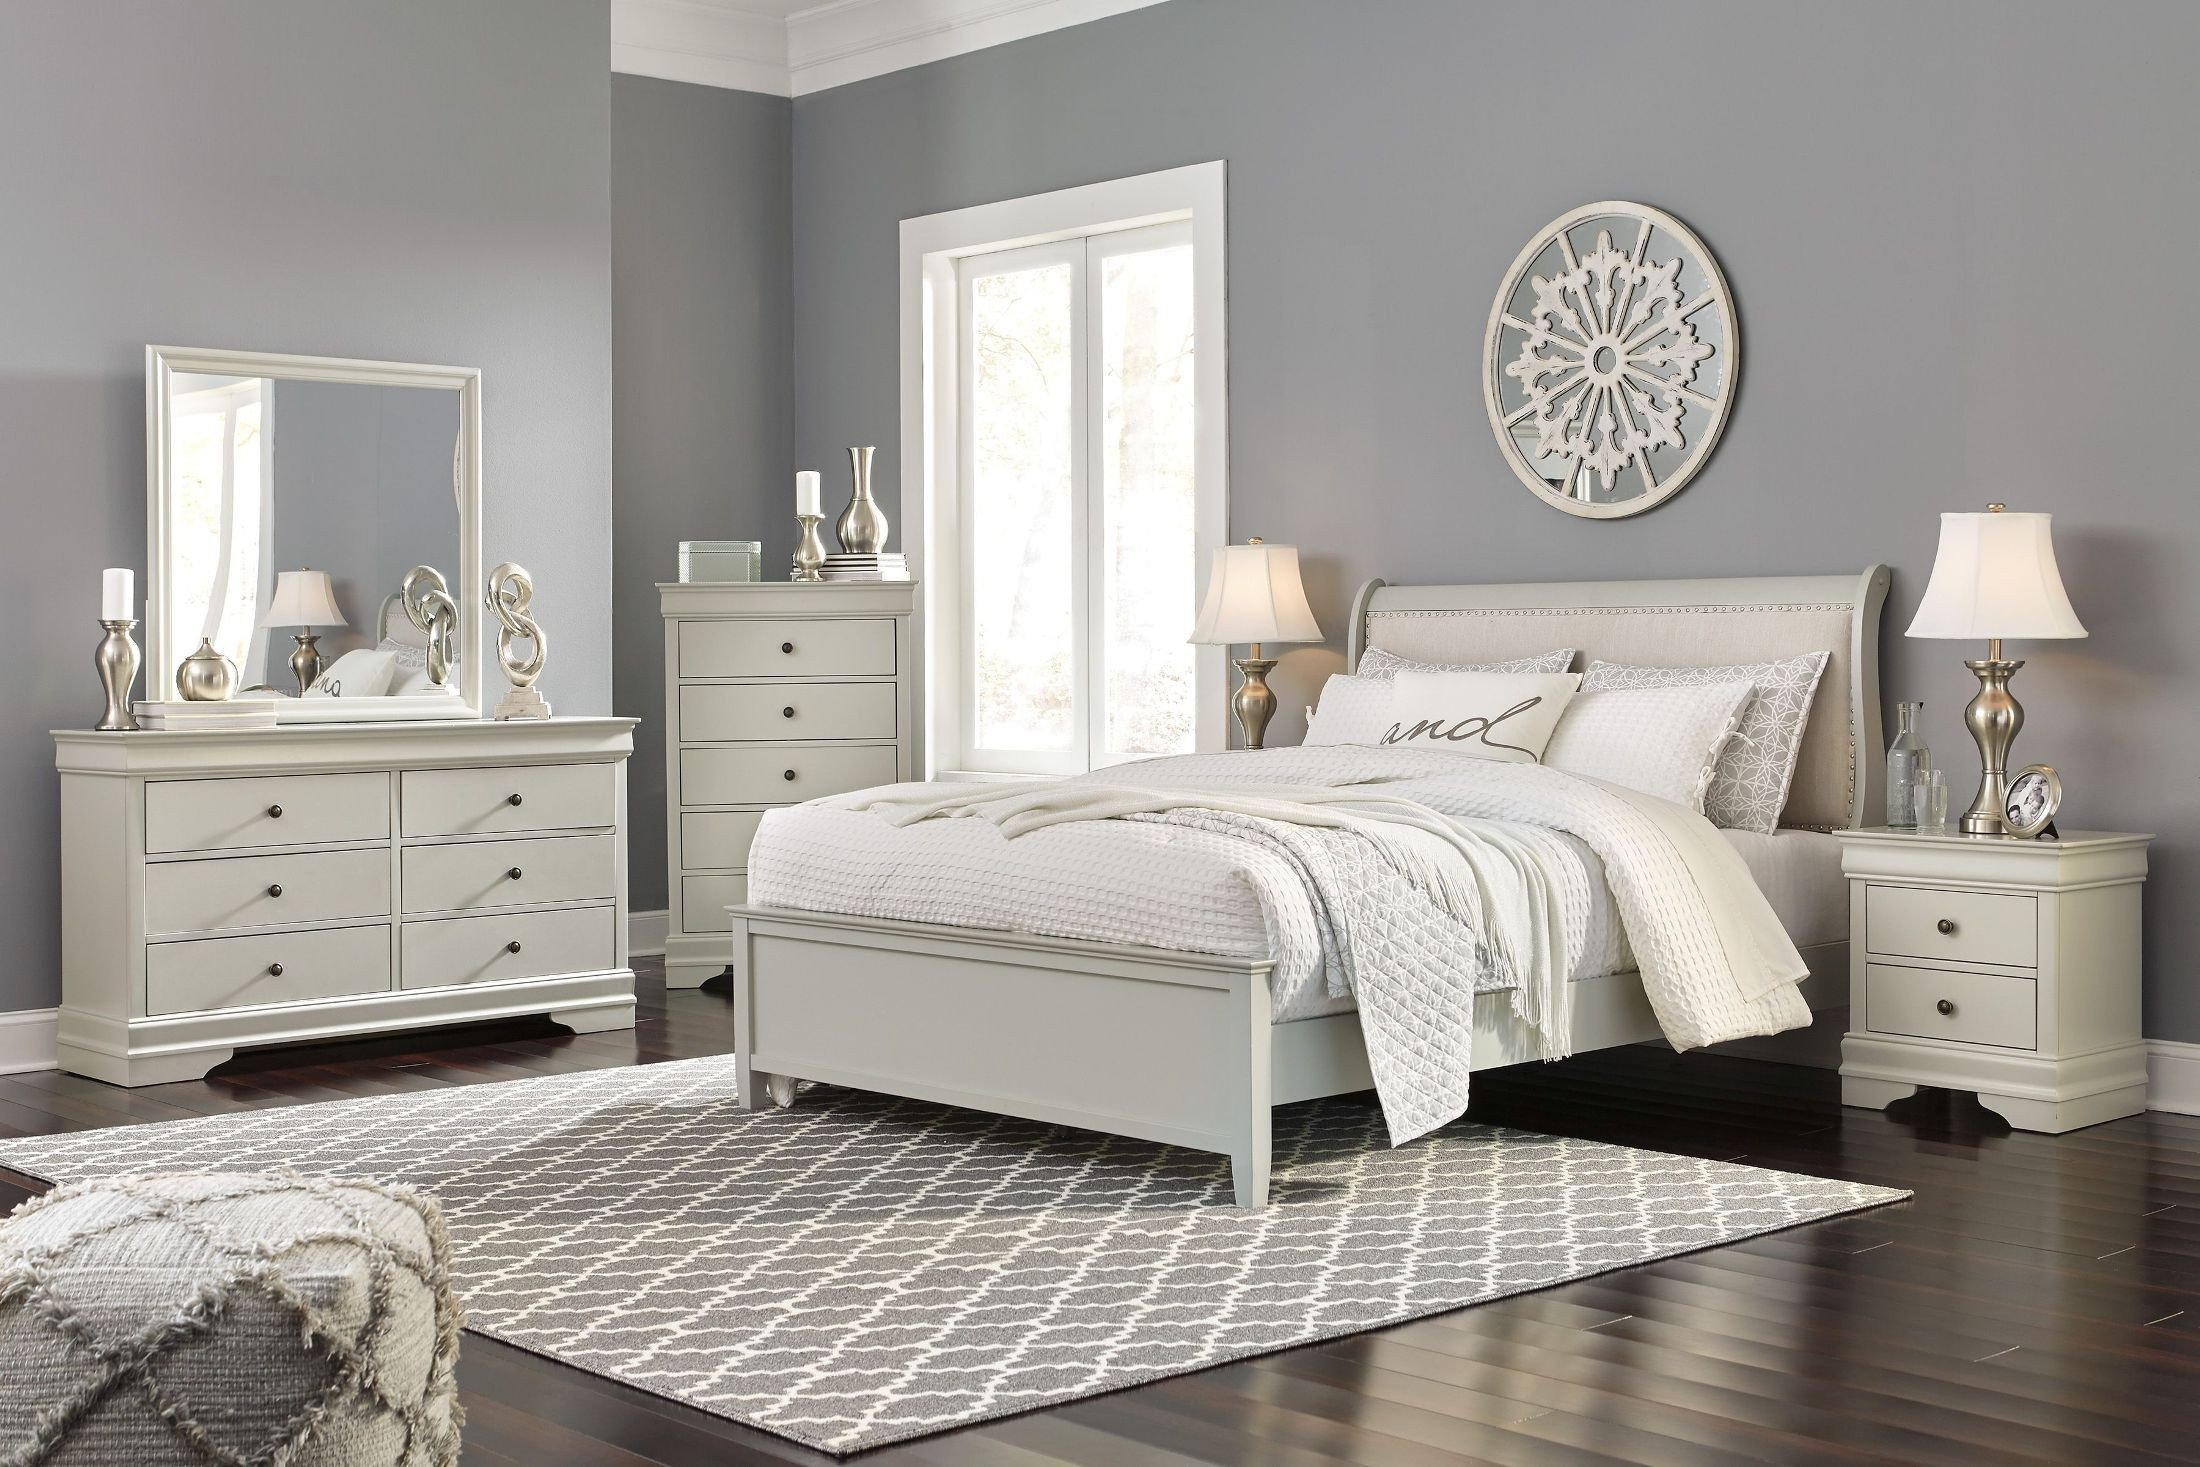 Cheap Bedroom Dresser Set Unique Emma Mason Signature Jarred 5 Piece Sleigh Bedroom Set In Gray